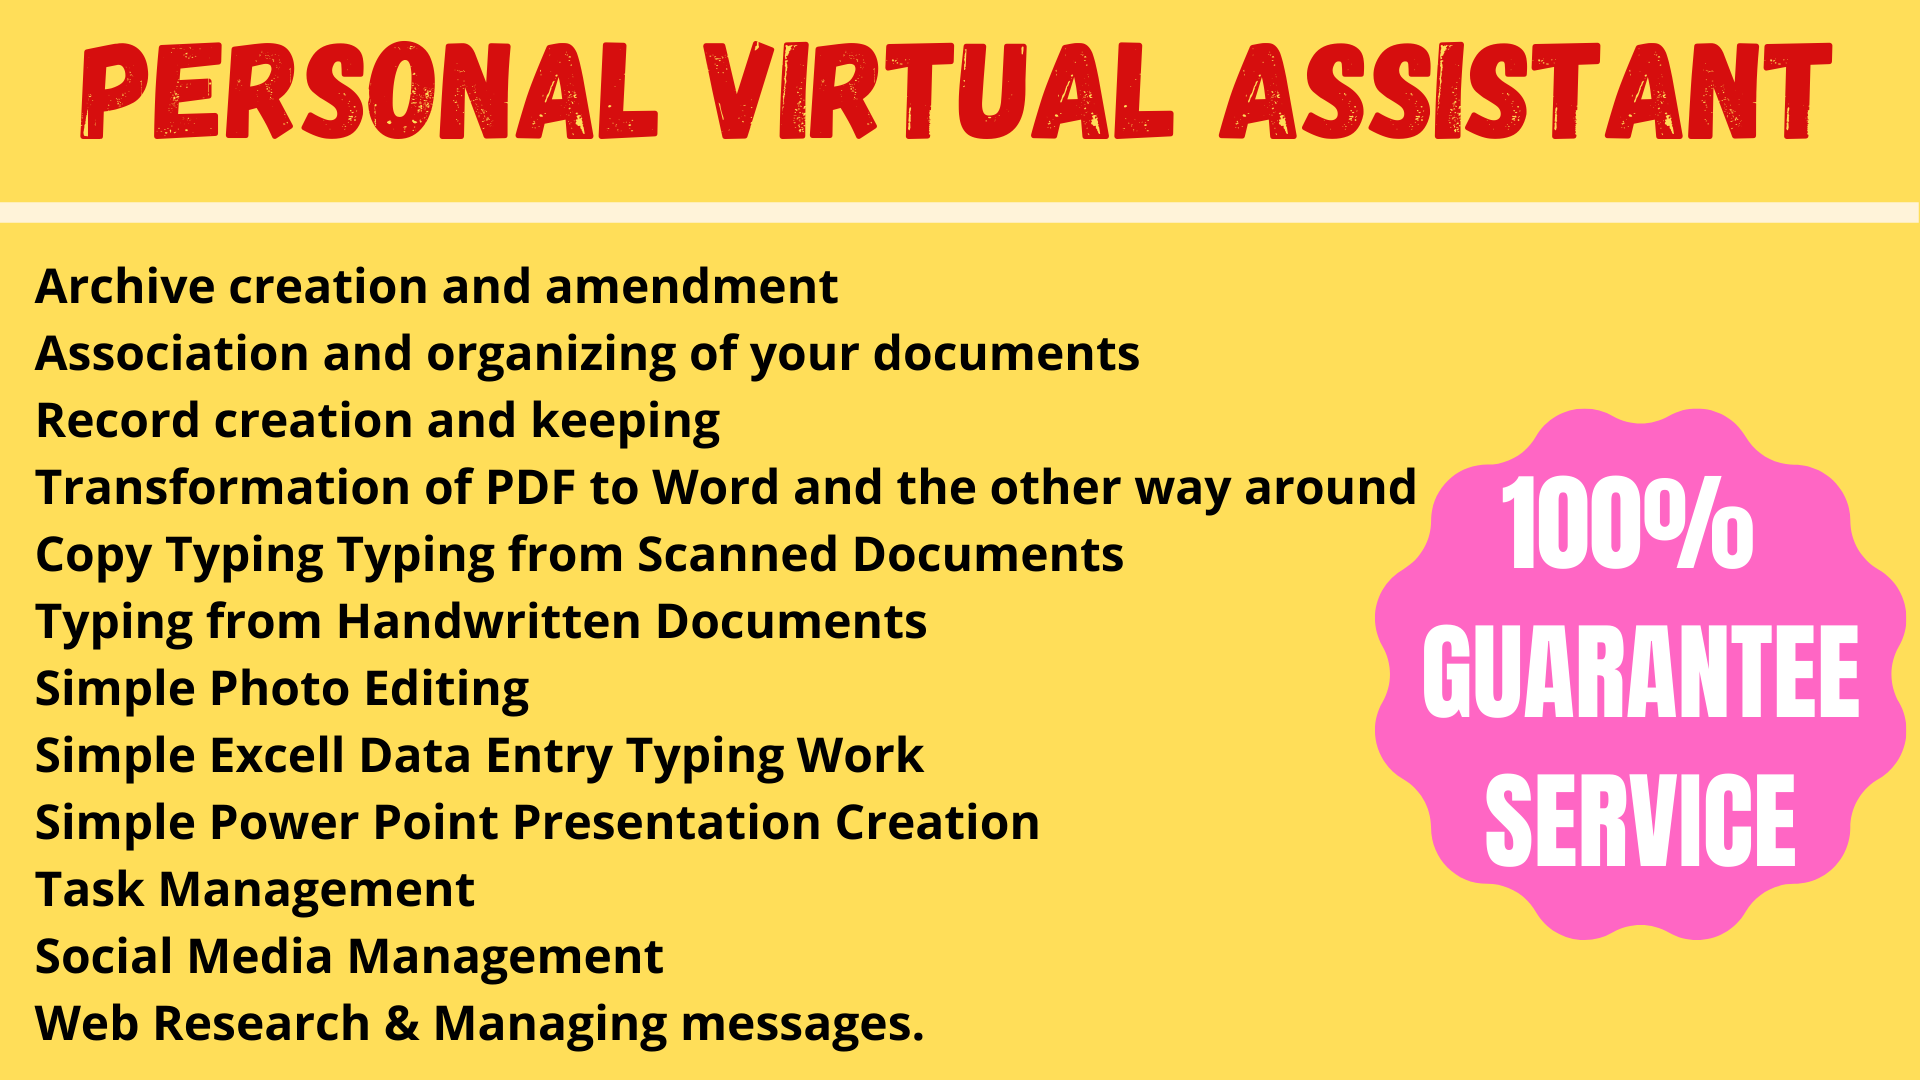 I will be your Virtual Assistant on a Daily, Weekly and Monthly Basis